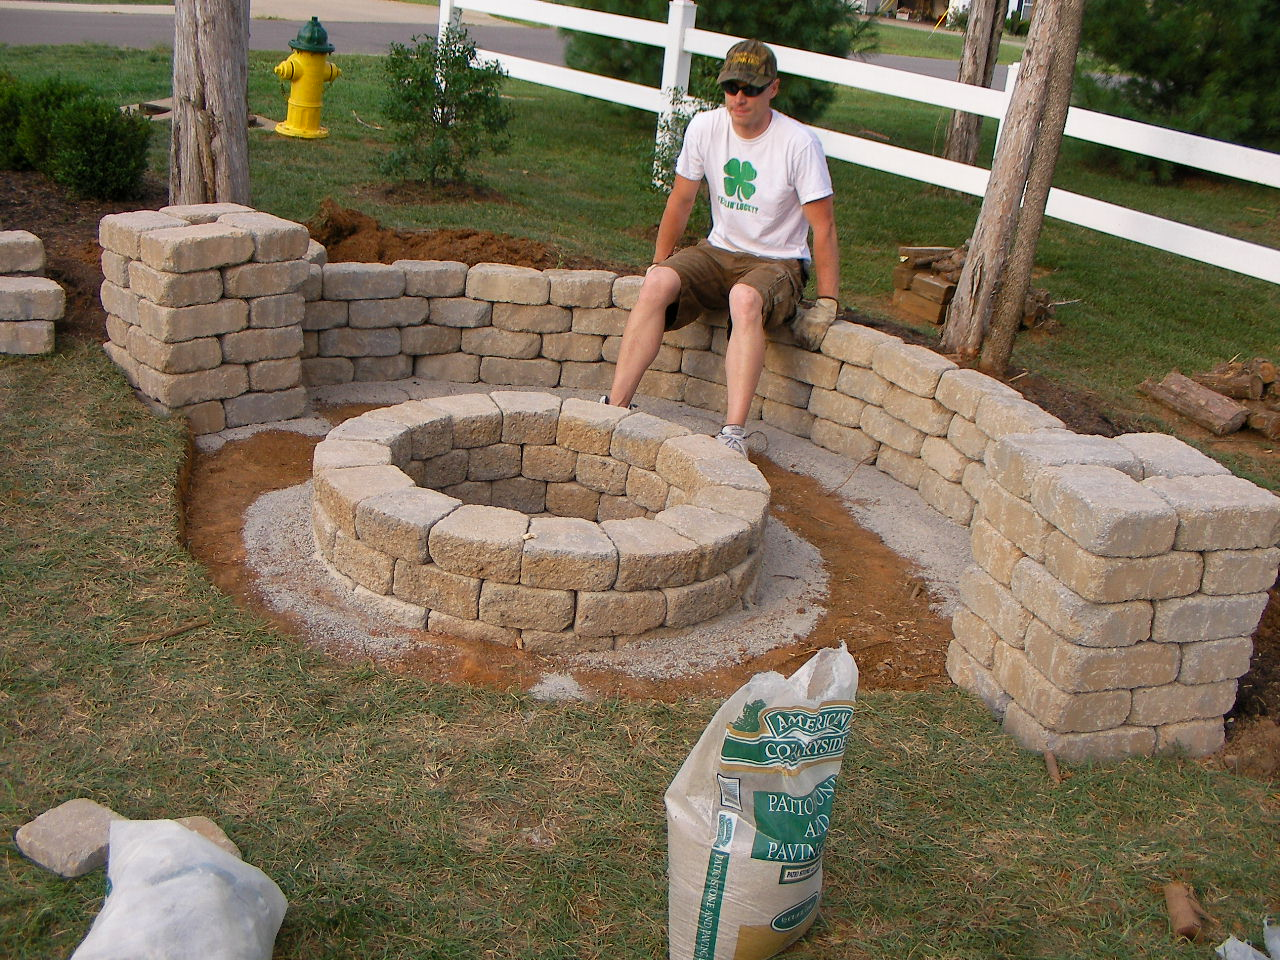 DIY Backyard Fire Pit - DIY Backyard Fire Pit FIREPLACE DESIGN IDEAS